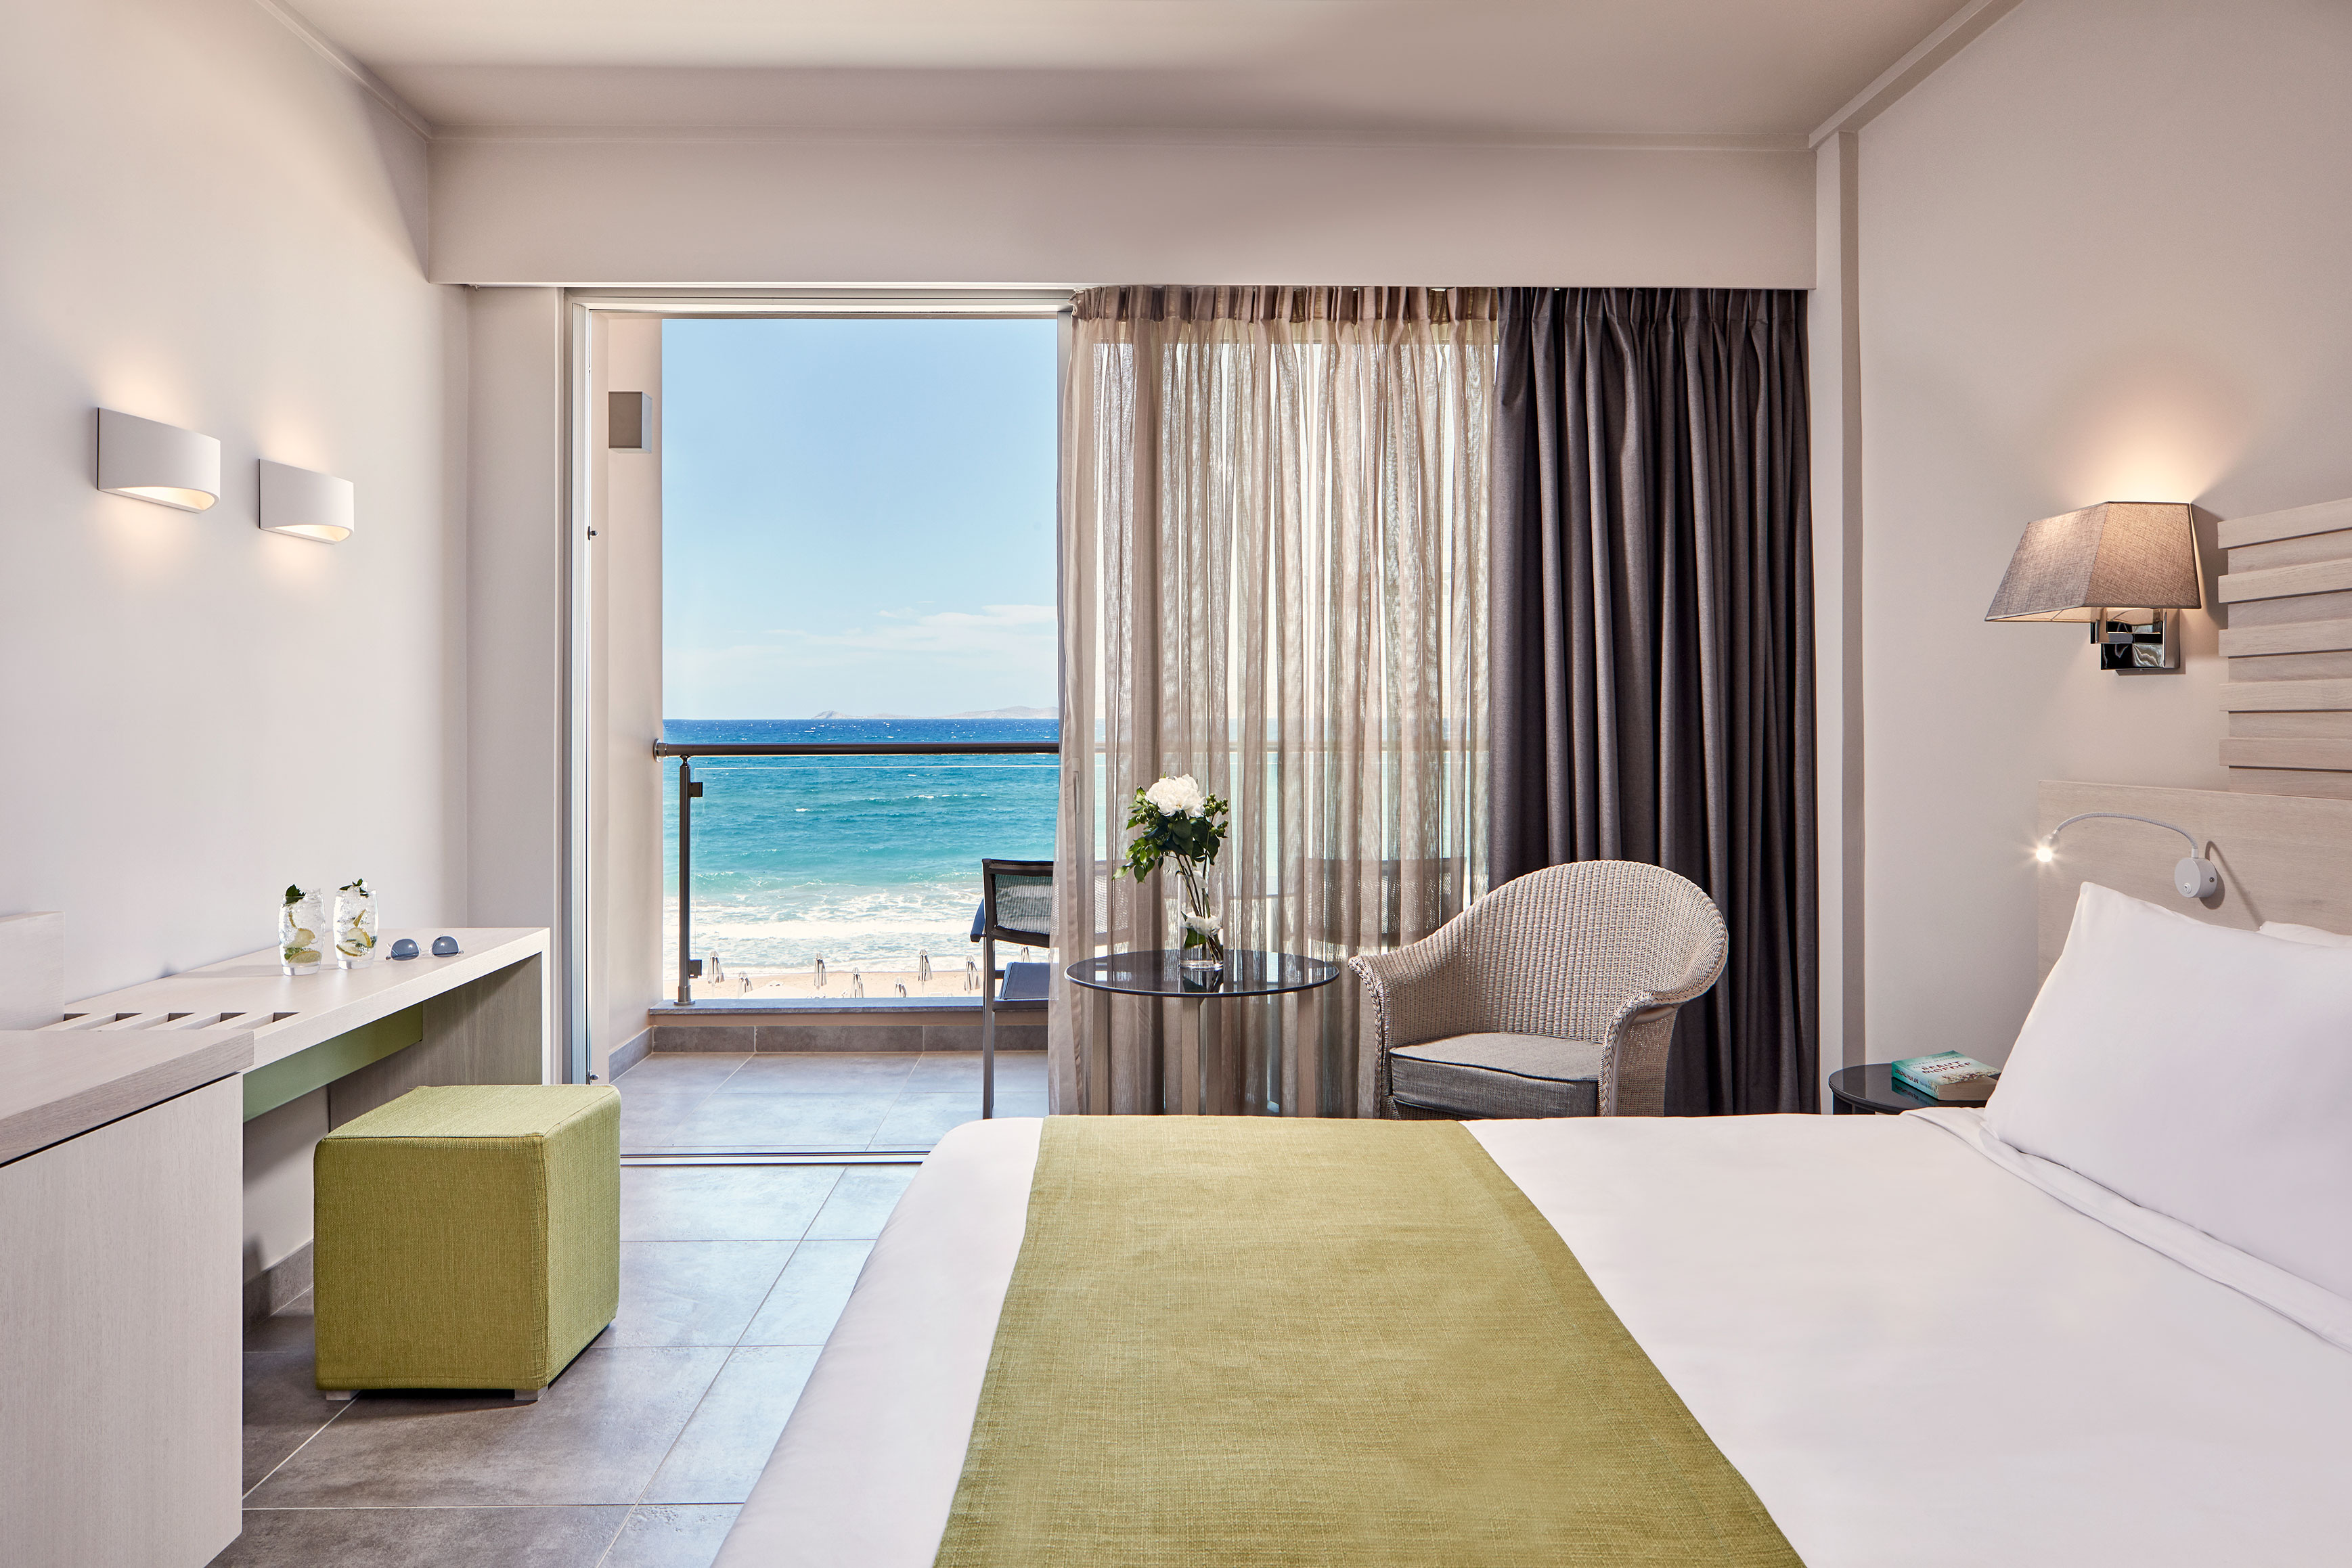 Standard Double room with Sea View - AKS HOTELS